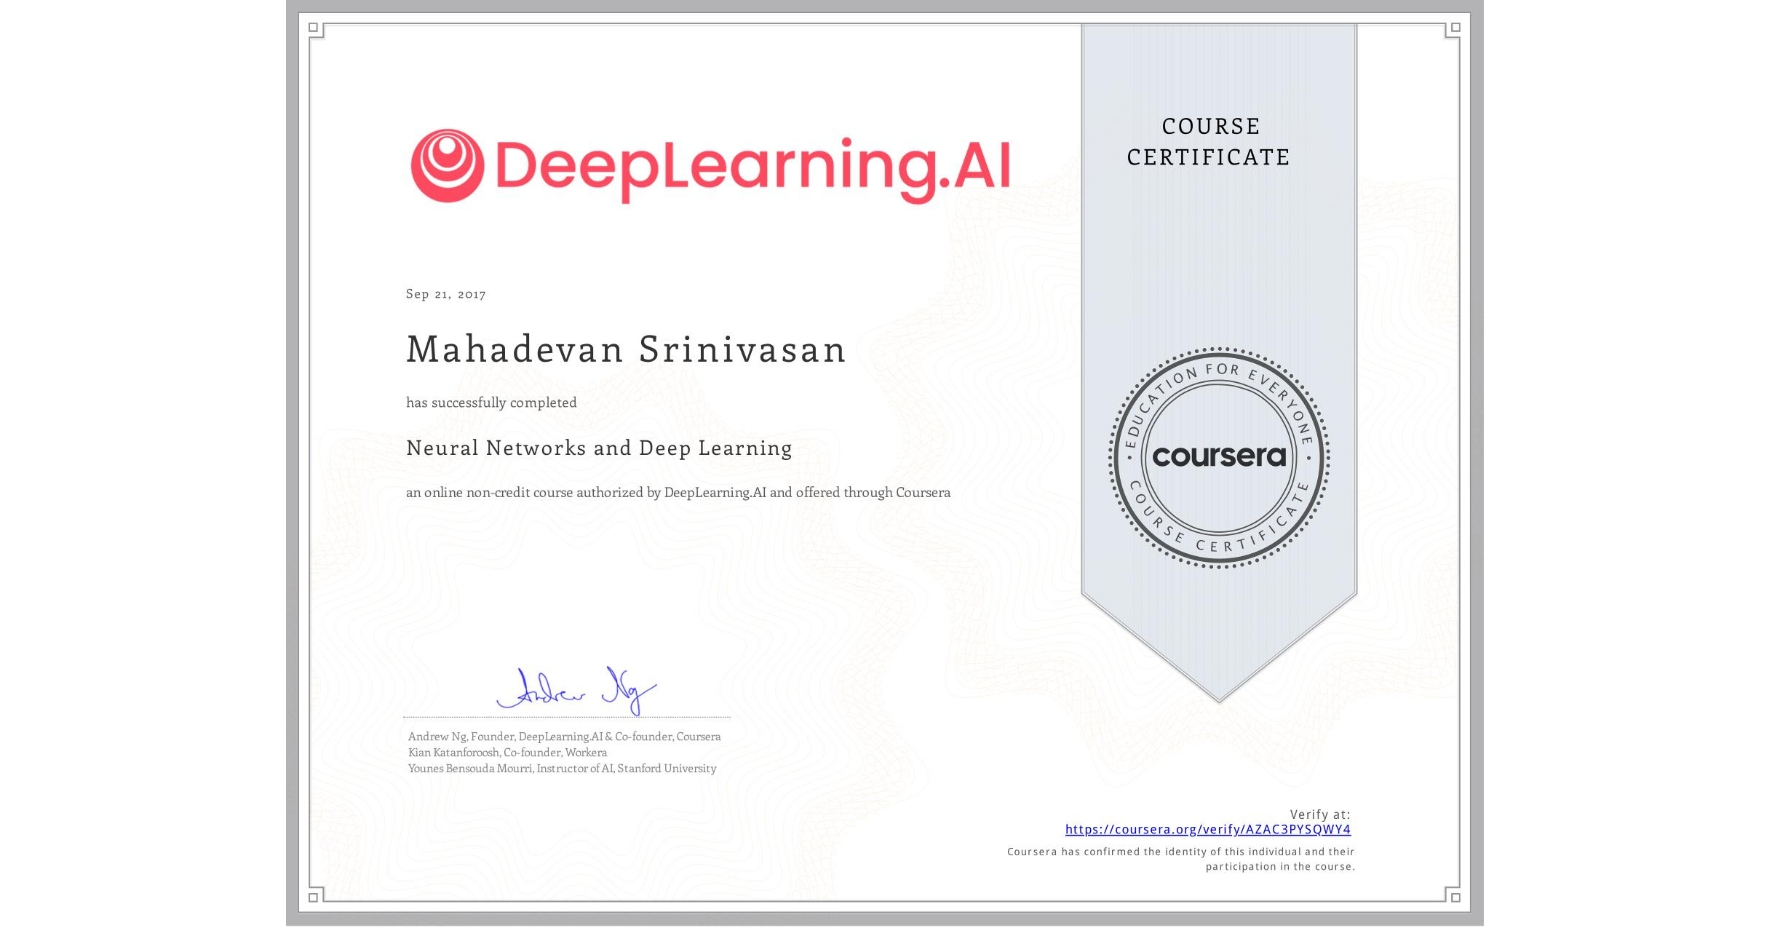 View certificate for Mahadevan Srinivasan, Neural Networks and Deep Learning, an online non-credit course authorized by DeepLearning.AI and offered through Coursera